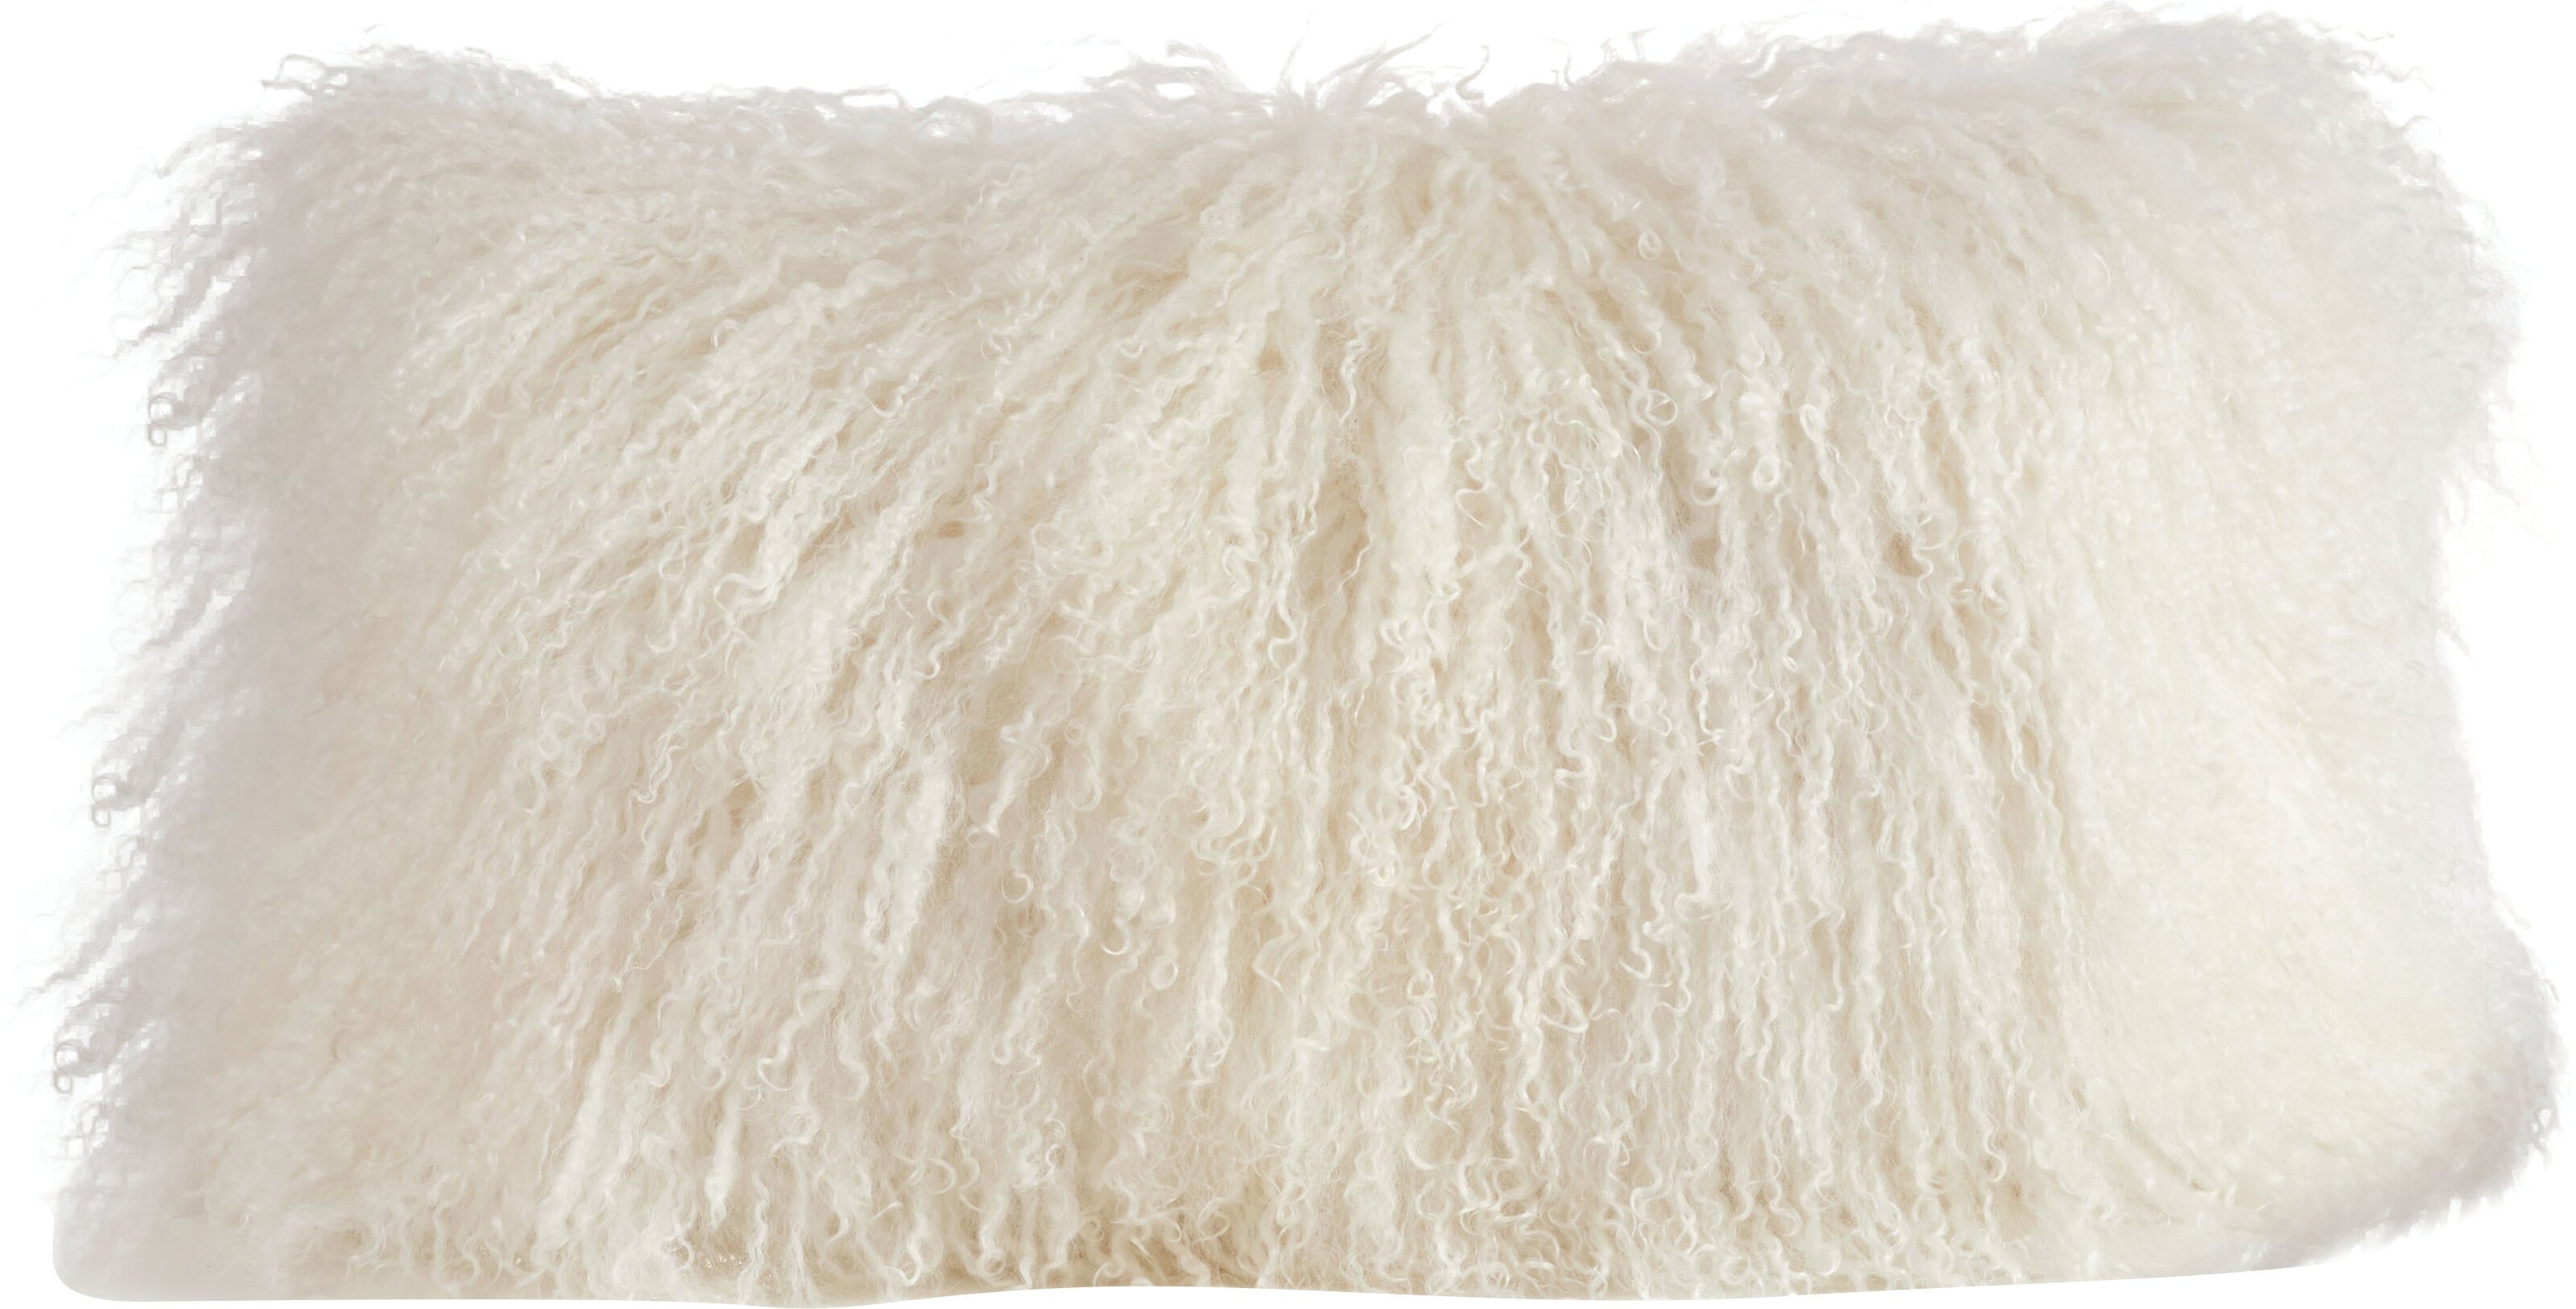 com size pillow jewelry overstock saro decor pillowsfur bedding electronics online clothing x pin pillowsdecorative more fur faux white throw furniture down filled shopping